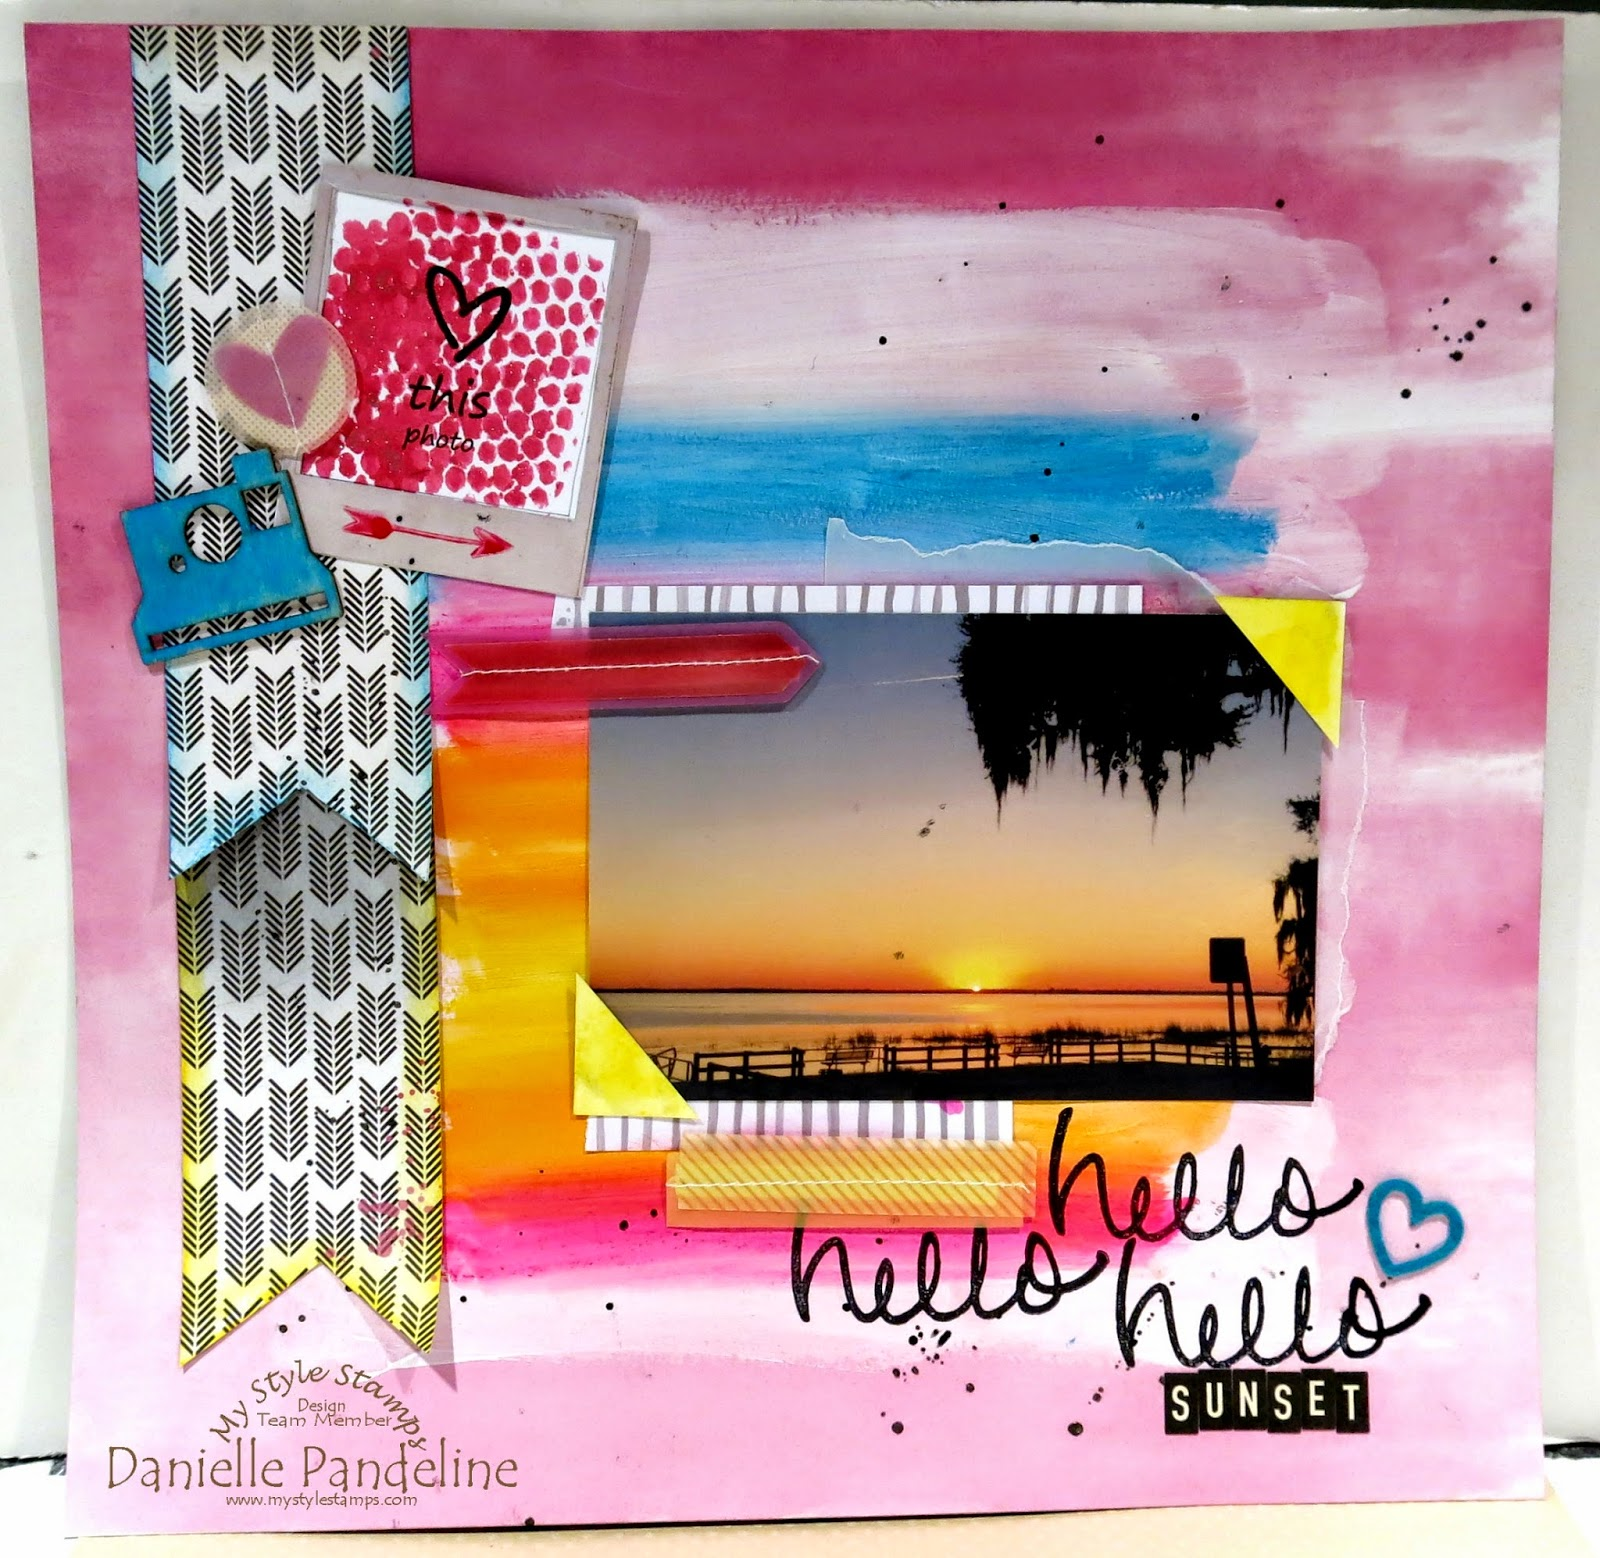 Hello Sunset Layout | Featuring My Style Stamps | Created by Danielle Pandeline